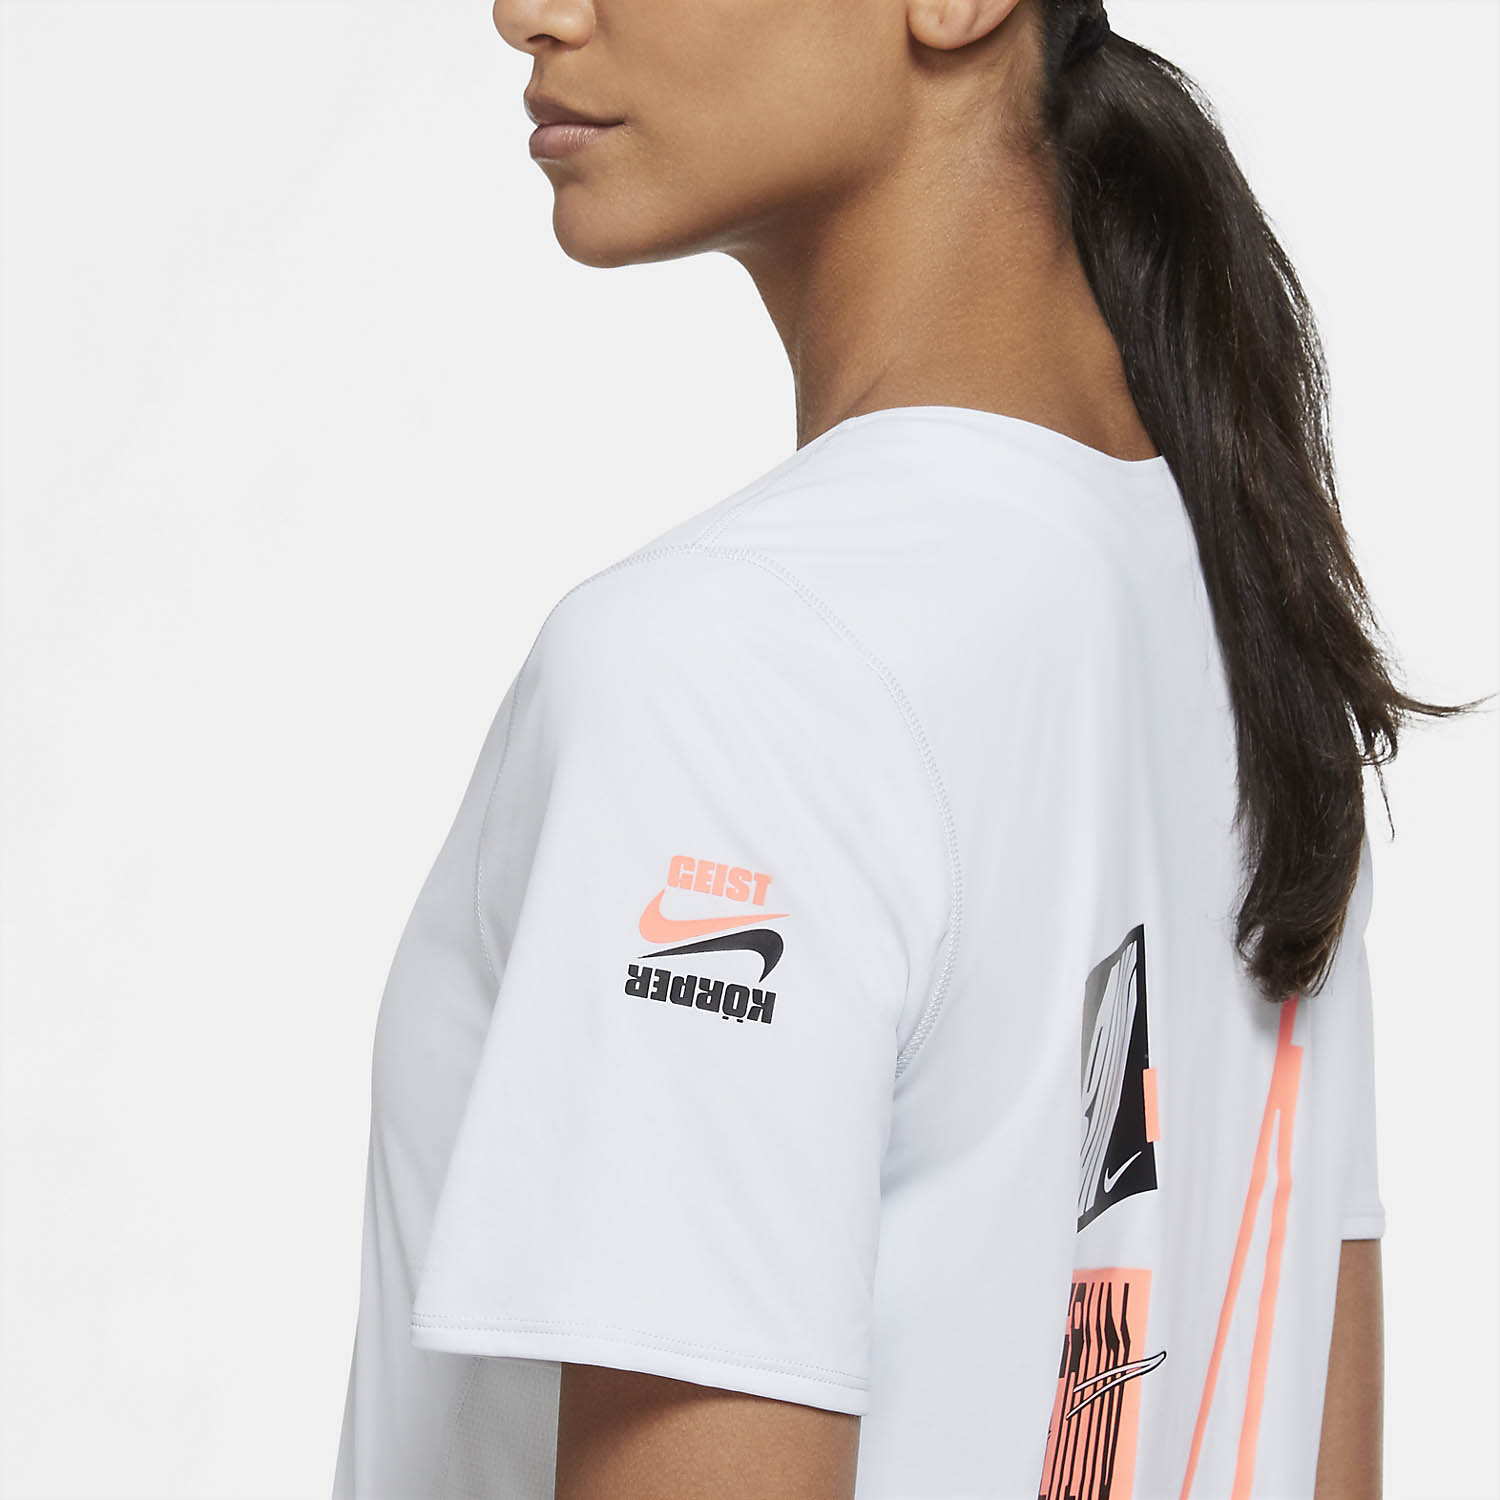 Nike City Sleek Berlin T-Shirt - Pure Platinum